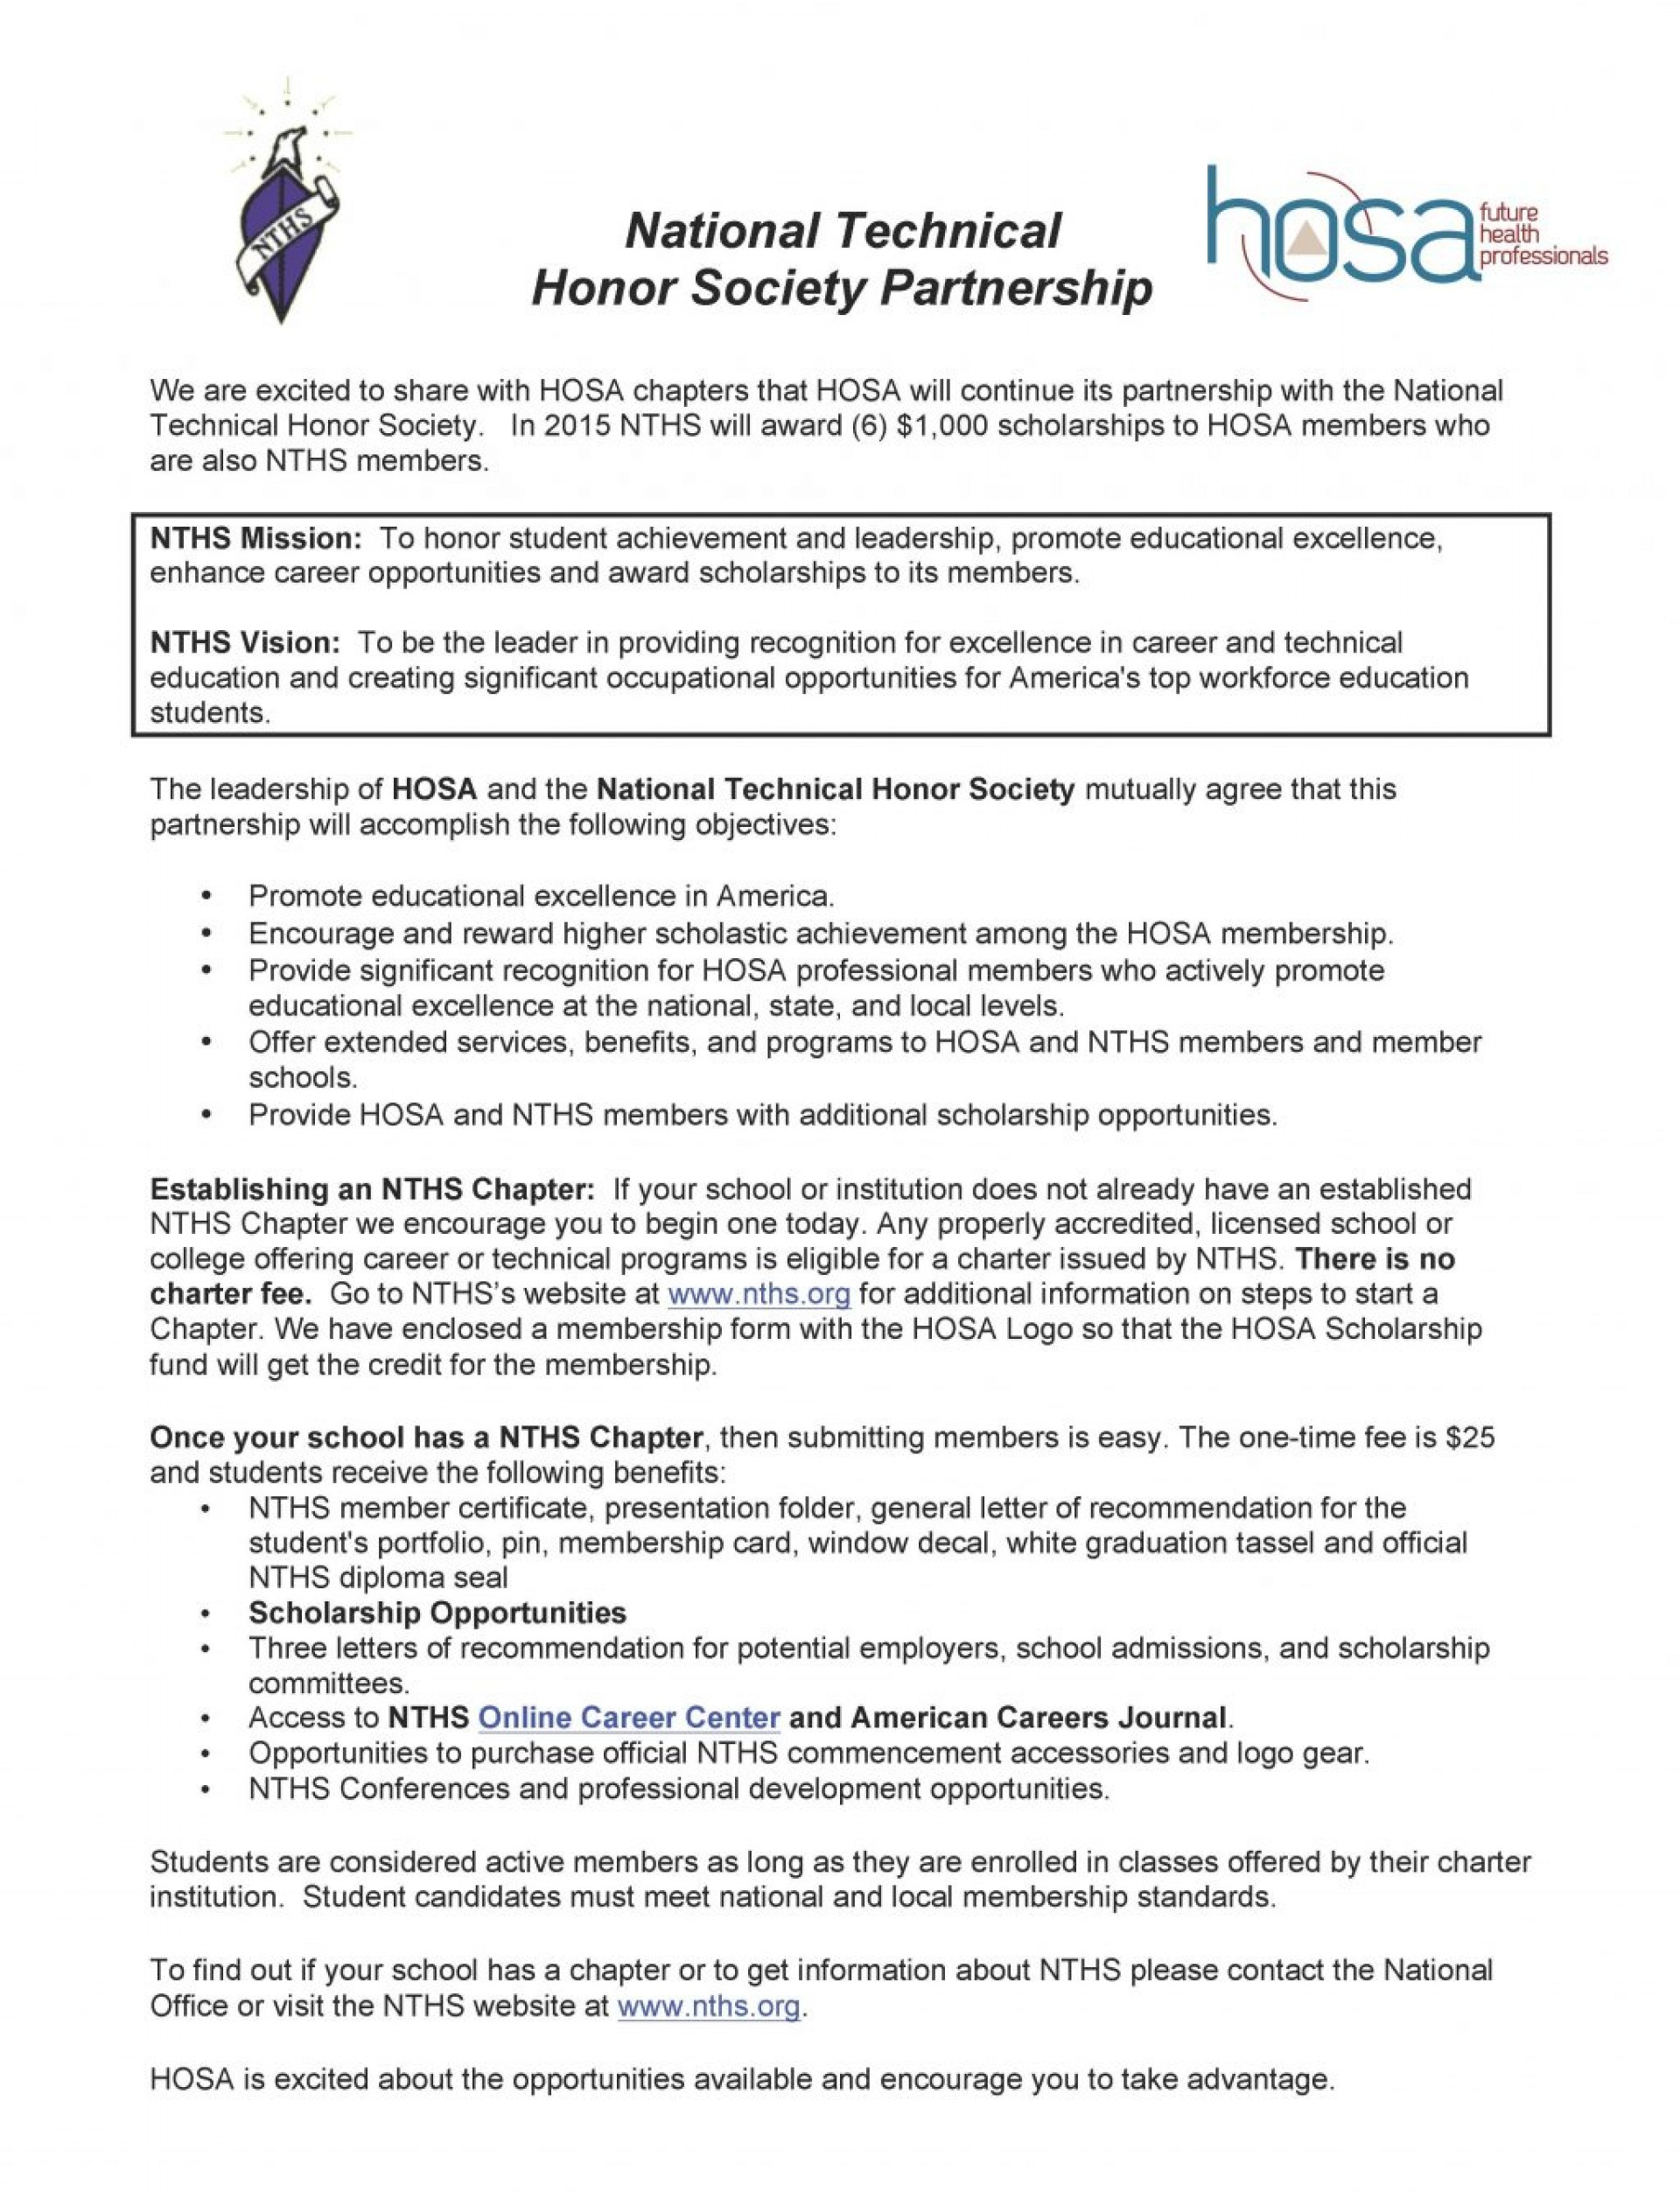 007 National Junior Honor Society Essay Example Cover Letter Nths Page 1 Template 1024x1336 Unique Honors Conclusion Samples Character 1920